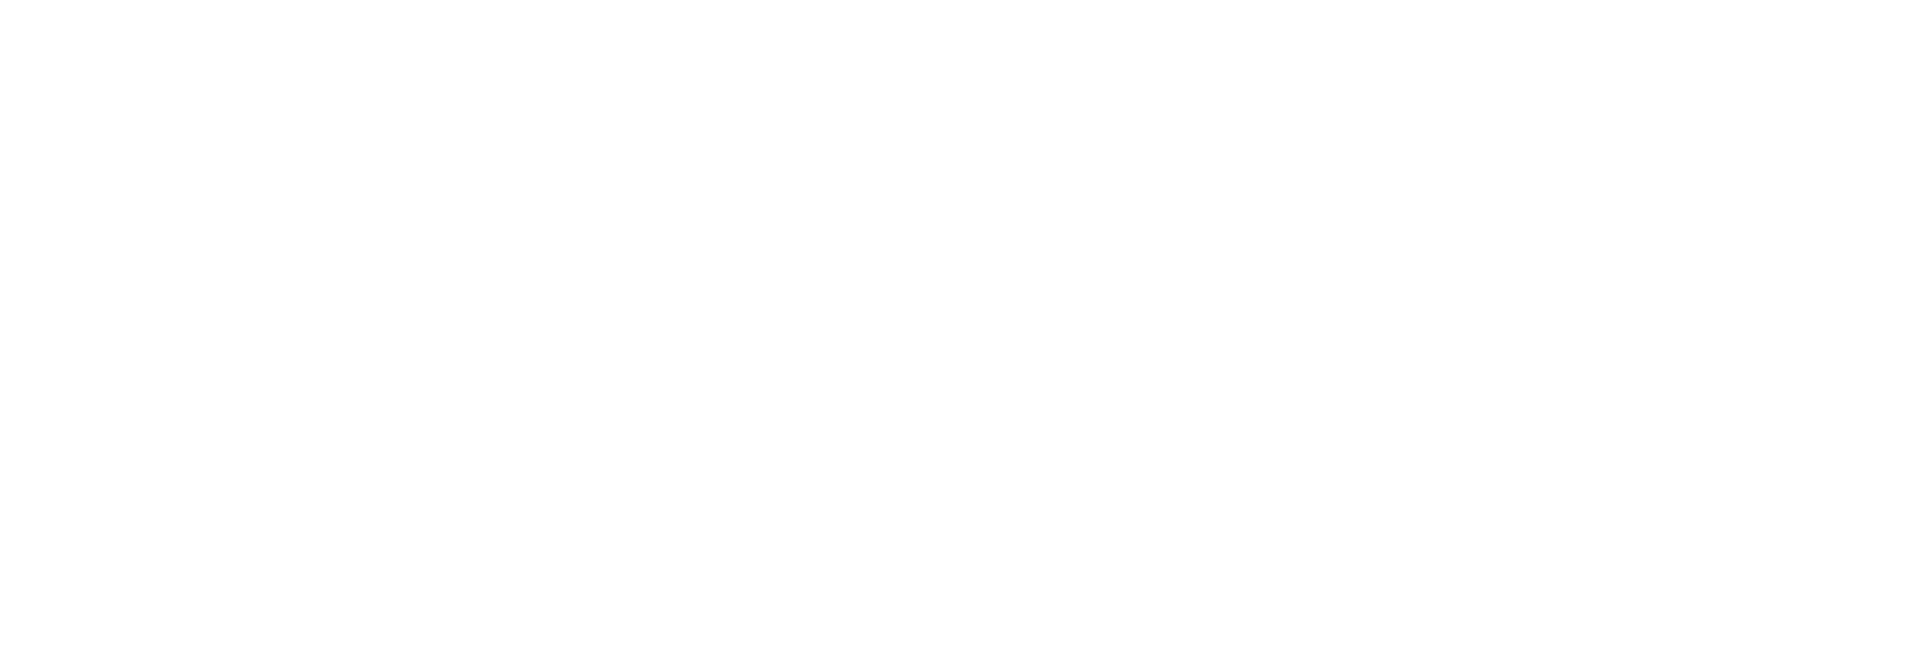 Boutique Living By Curate